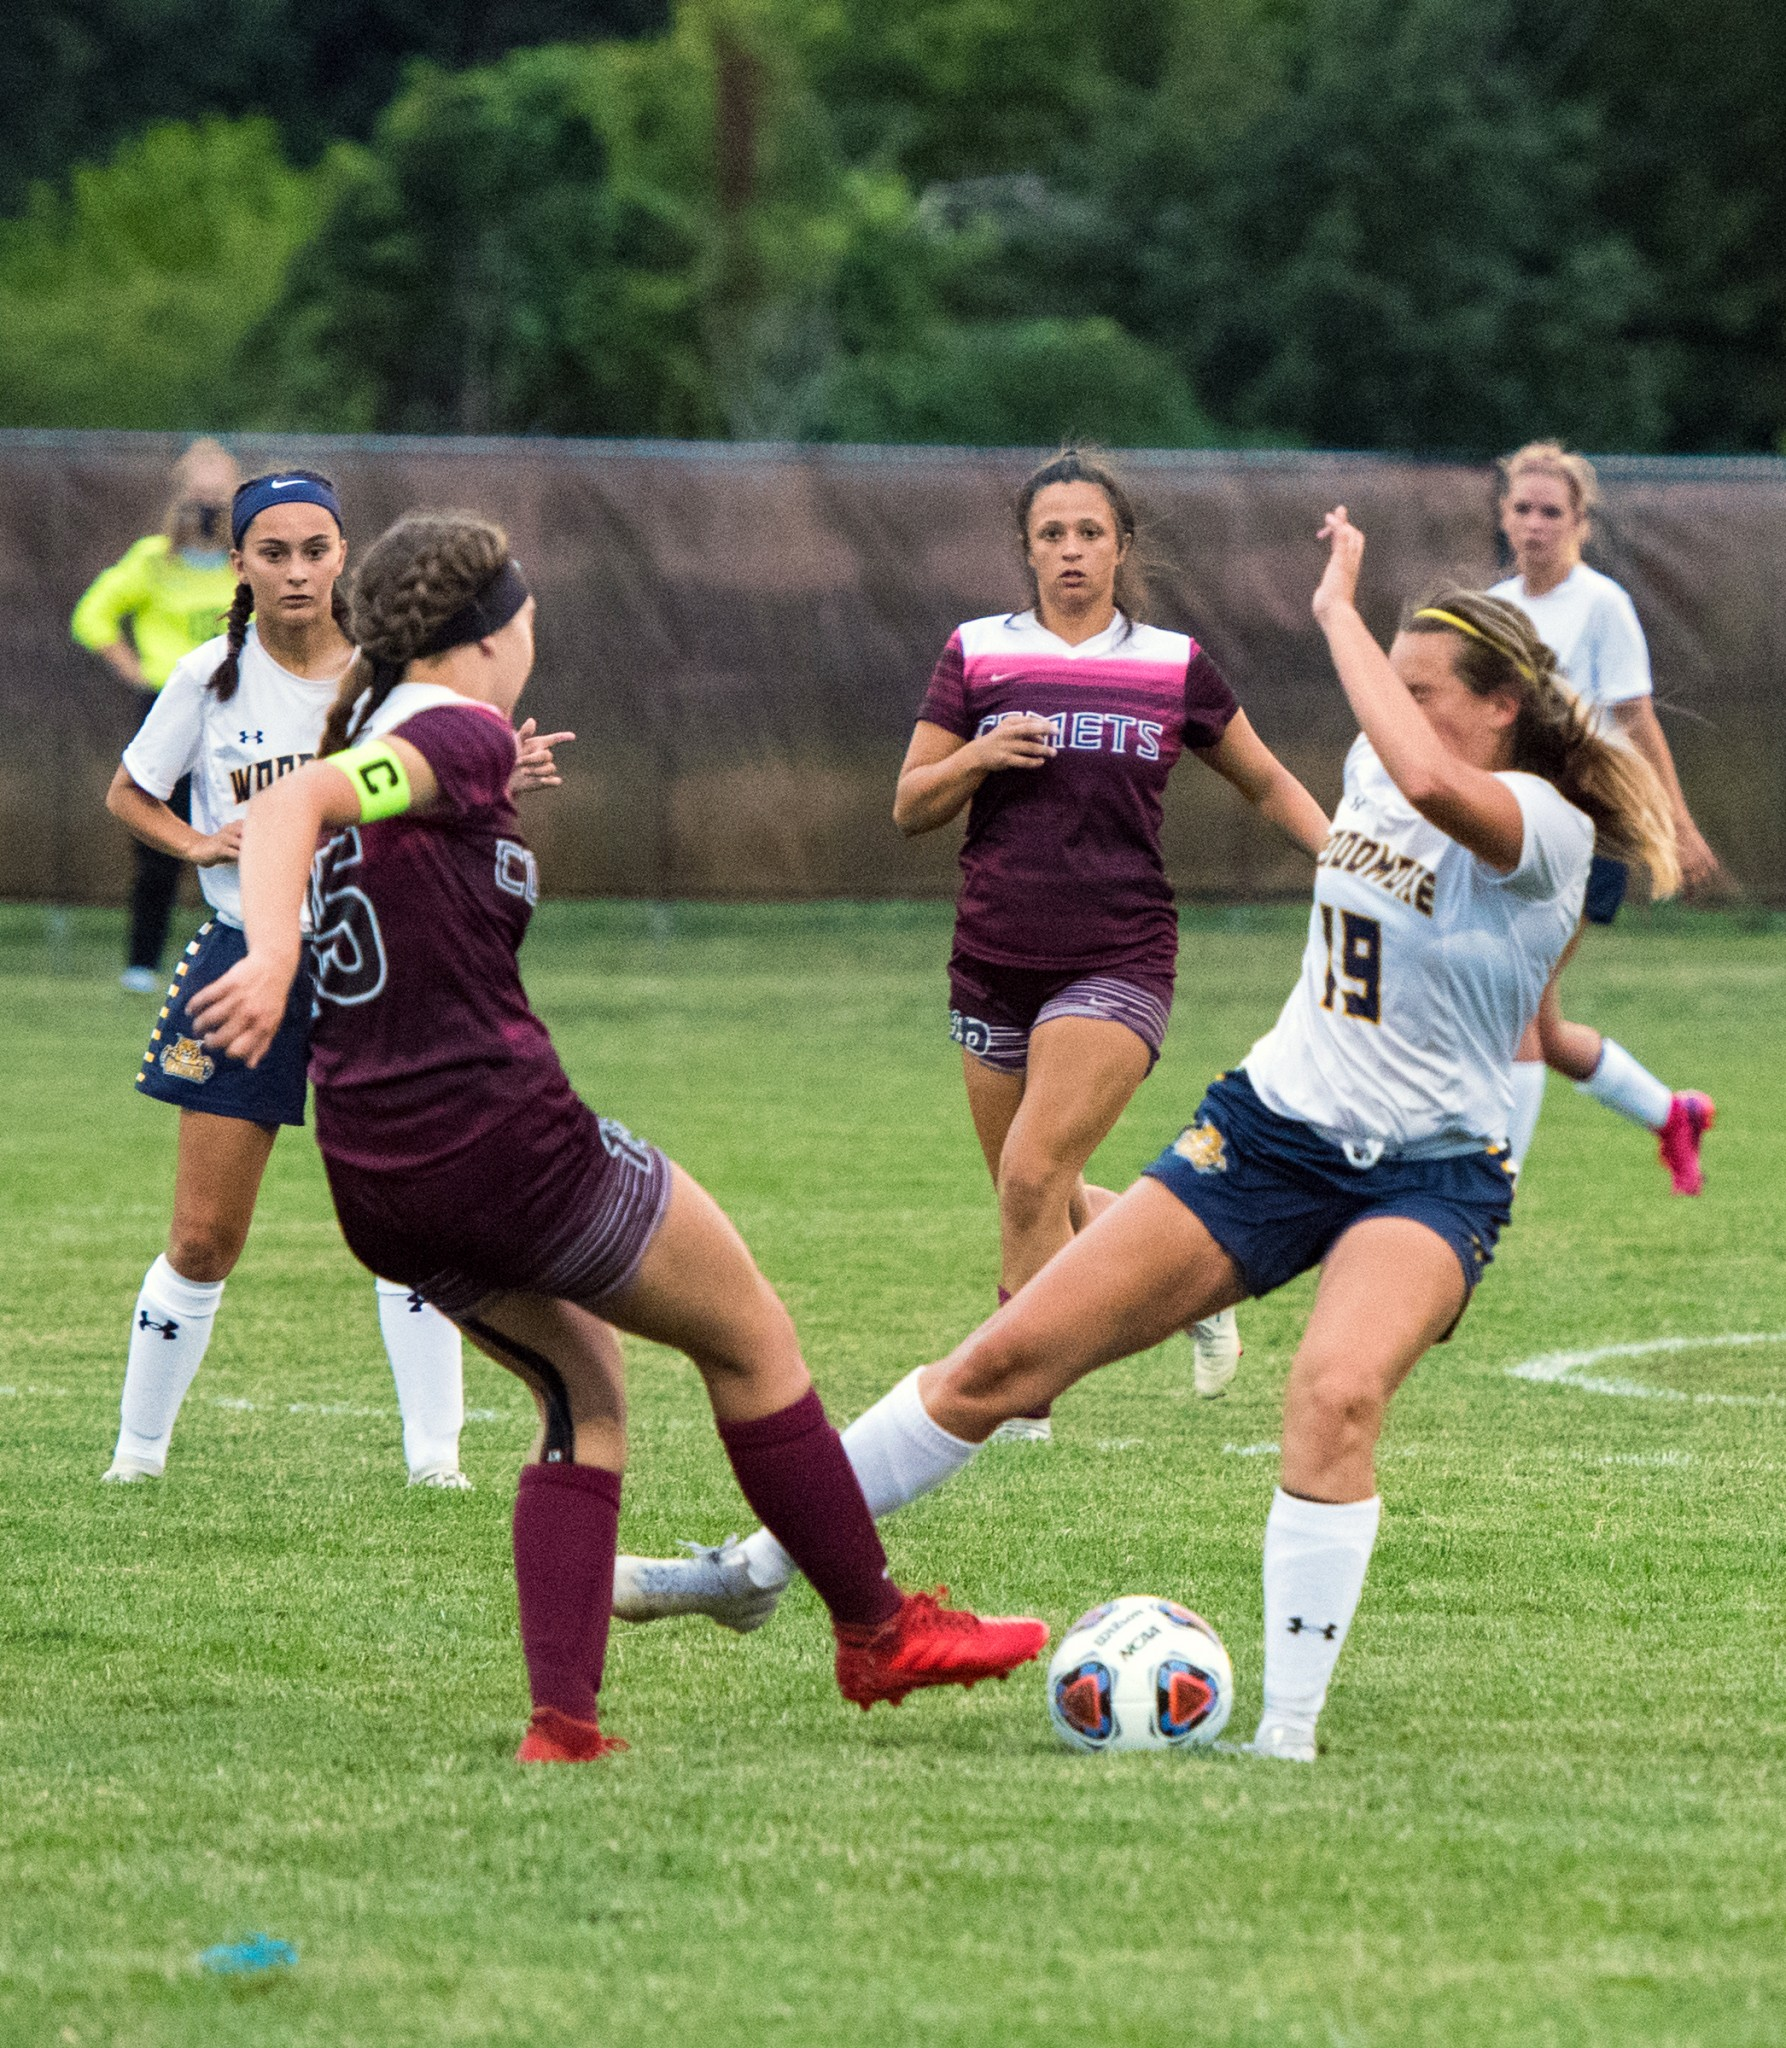 """Woodmore senior midfielder/forward Autumn Beaudoin (19) clashes with a Genoa defender. (Press photo by Russ Lytle/<a href=""""http://www.Facebook.com/RussLytle/RHP"""">www.Facebook.com/RussLytle/RHP</a>)"""